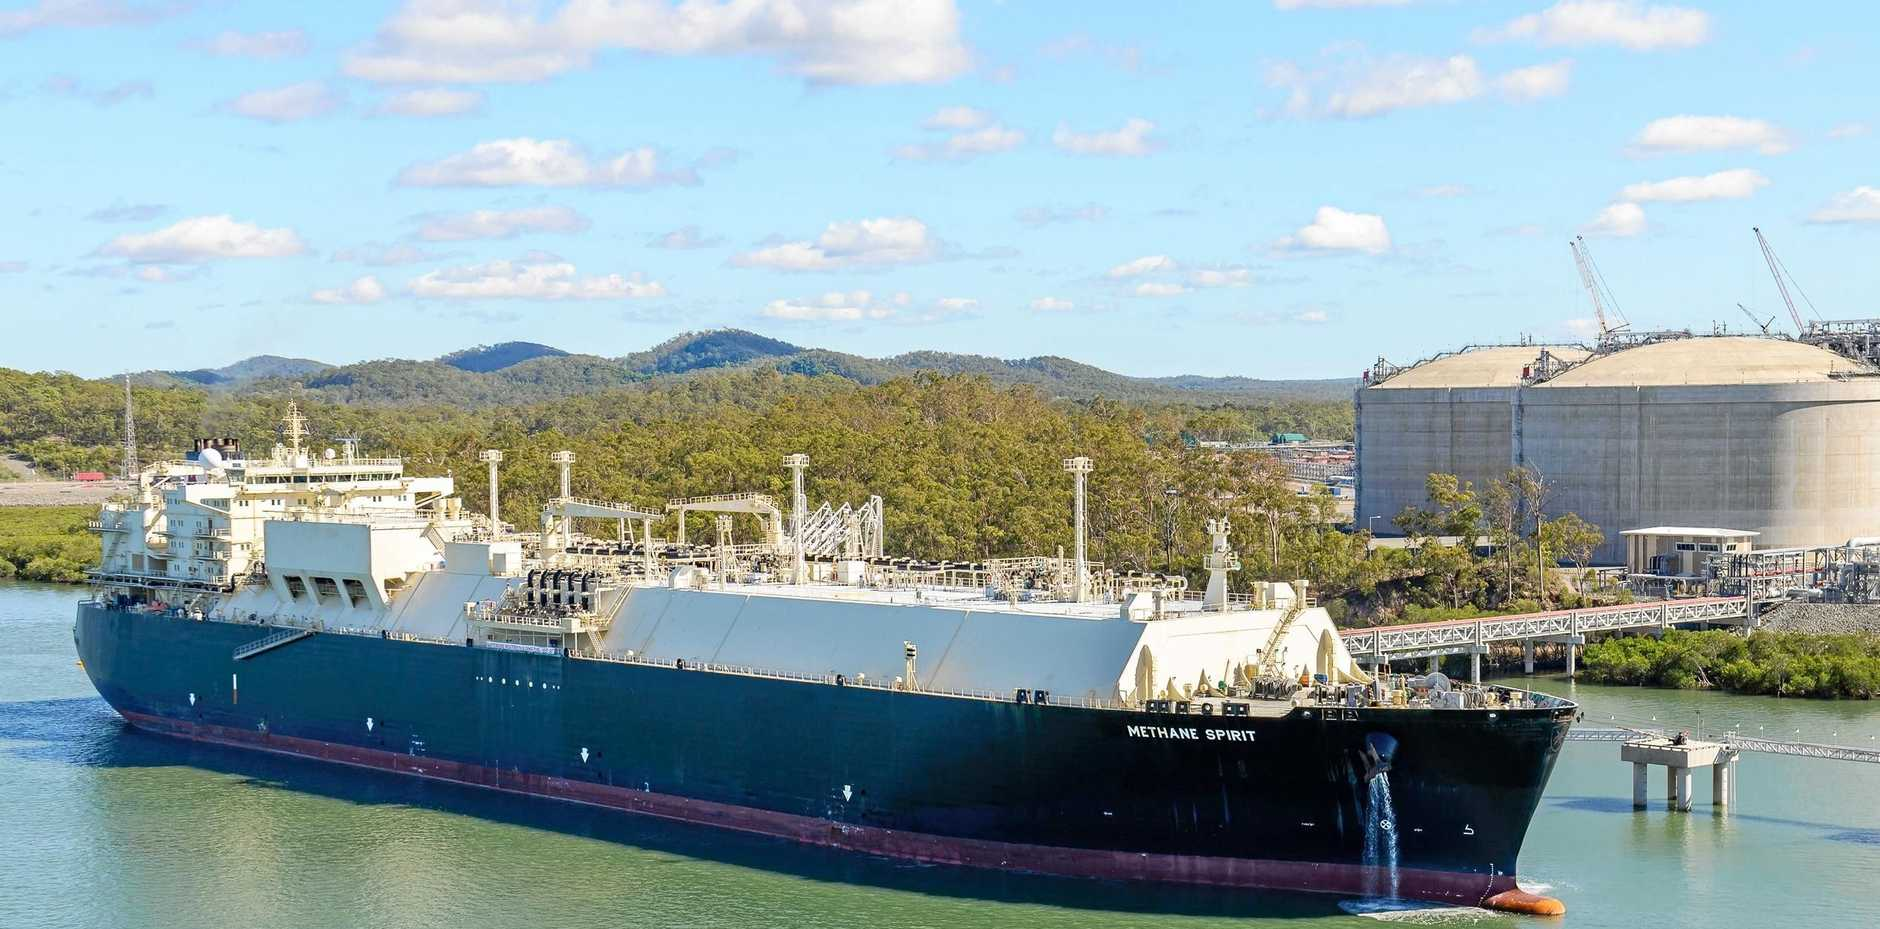 Methane Spirit takes on  the first load of liquefied natural gas to leave the APLNG processing plant on Gladstone's Curtis Island.